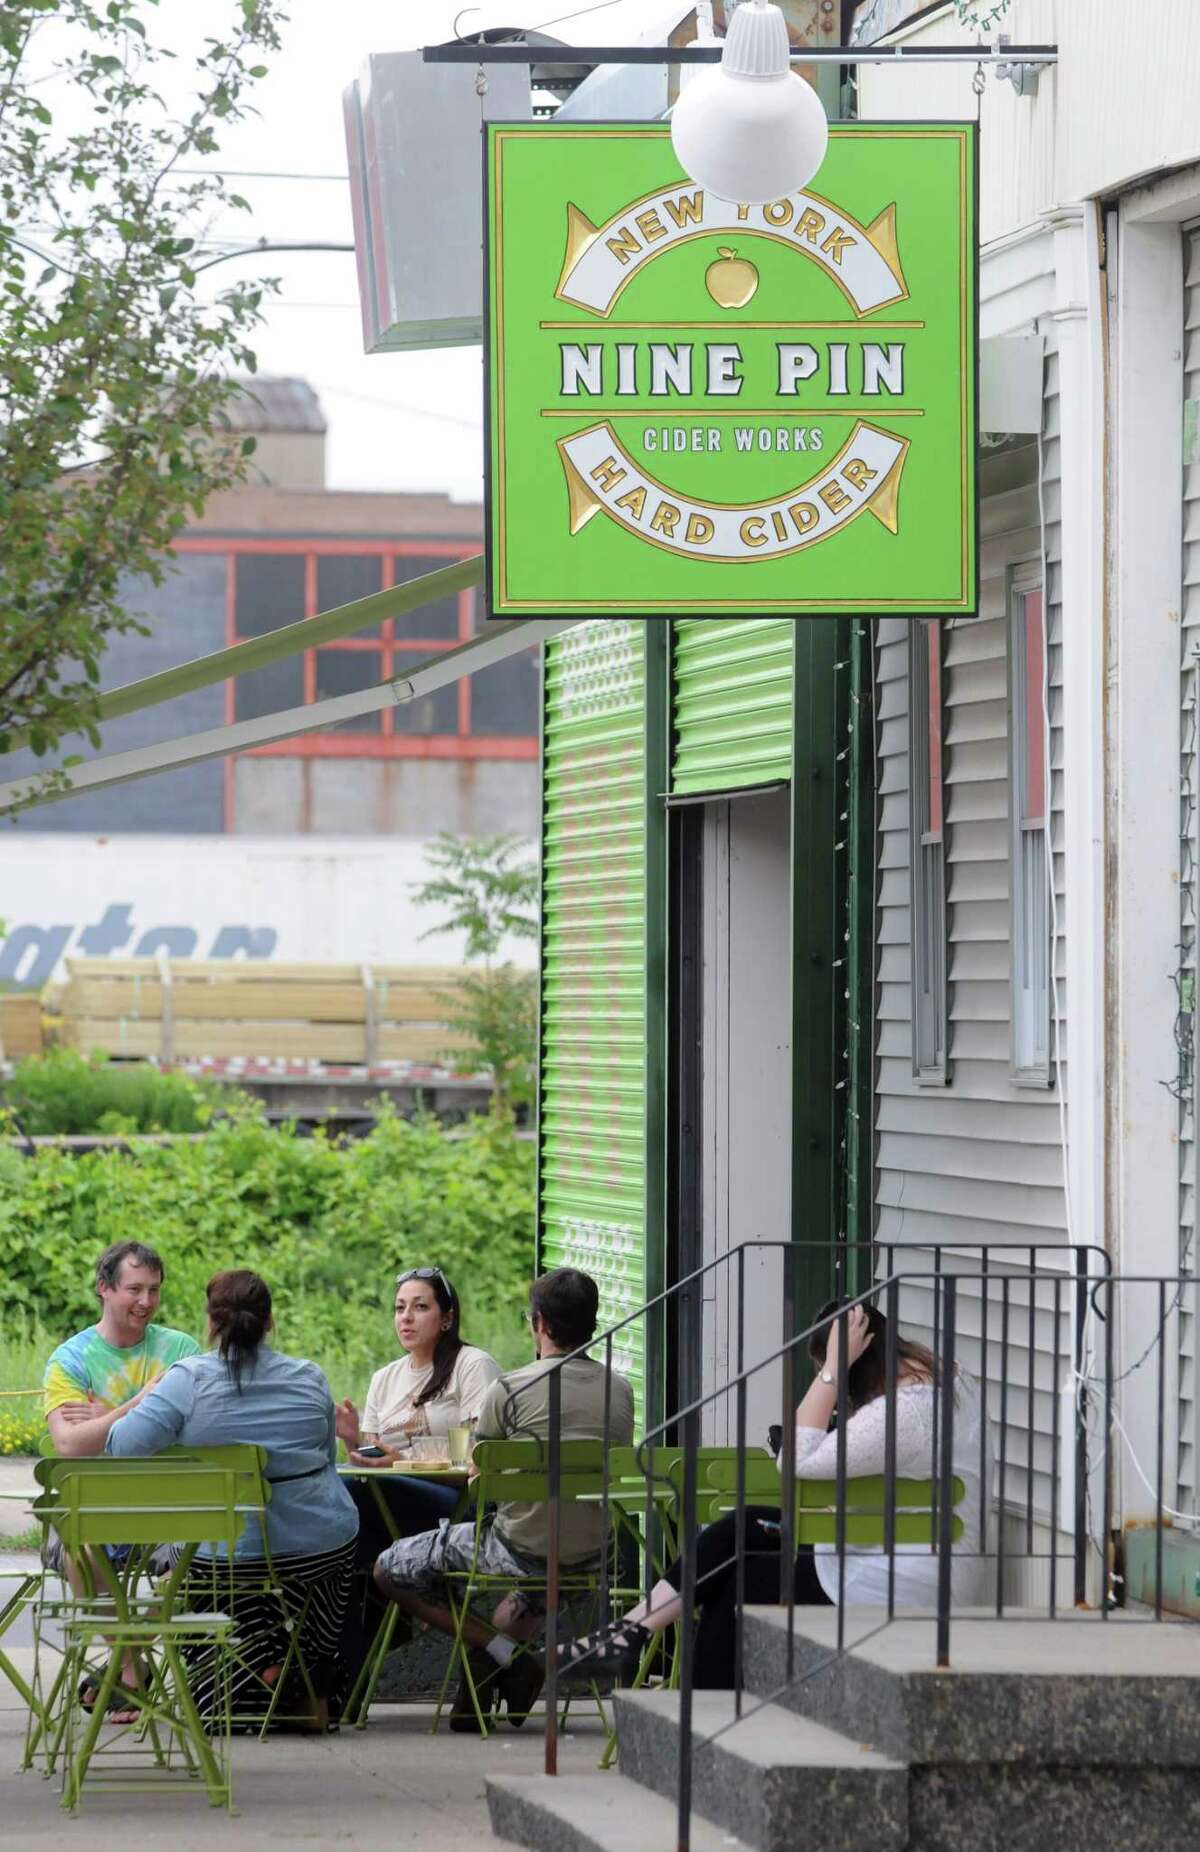 Nine Pin Cider Works on Wednesday June 17, 2015 in Albany, N.Y. (Michael P. Farrell/Times Union)